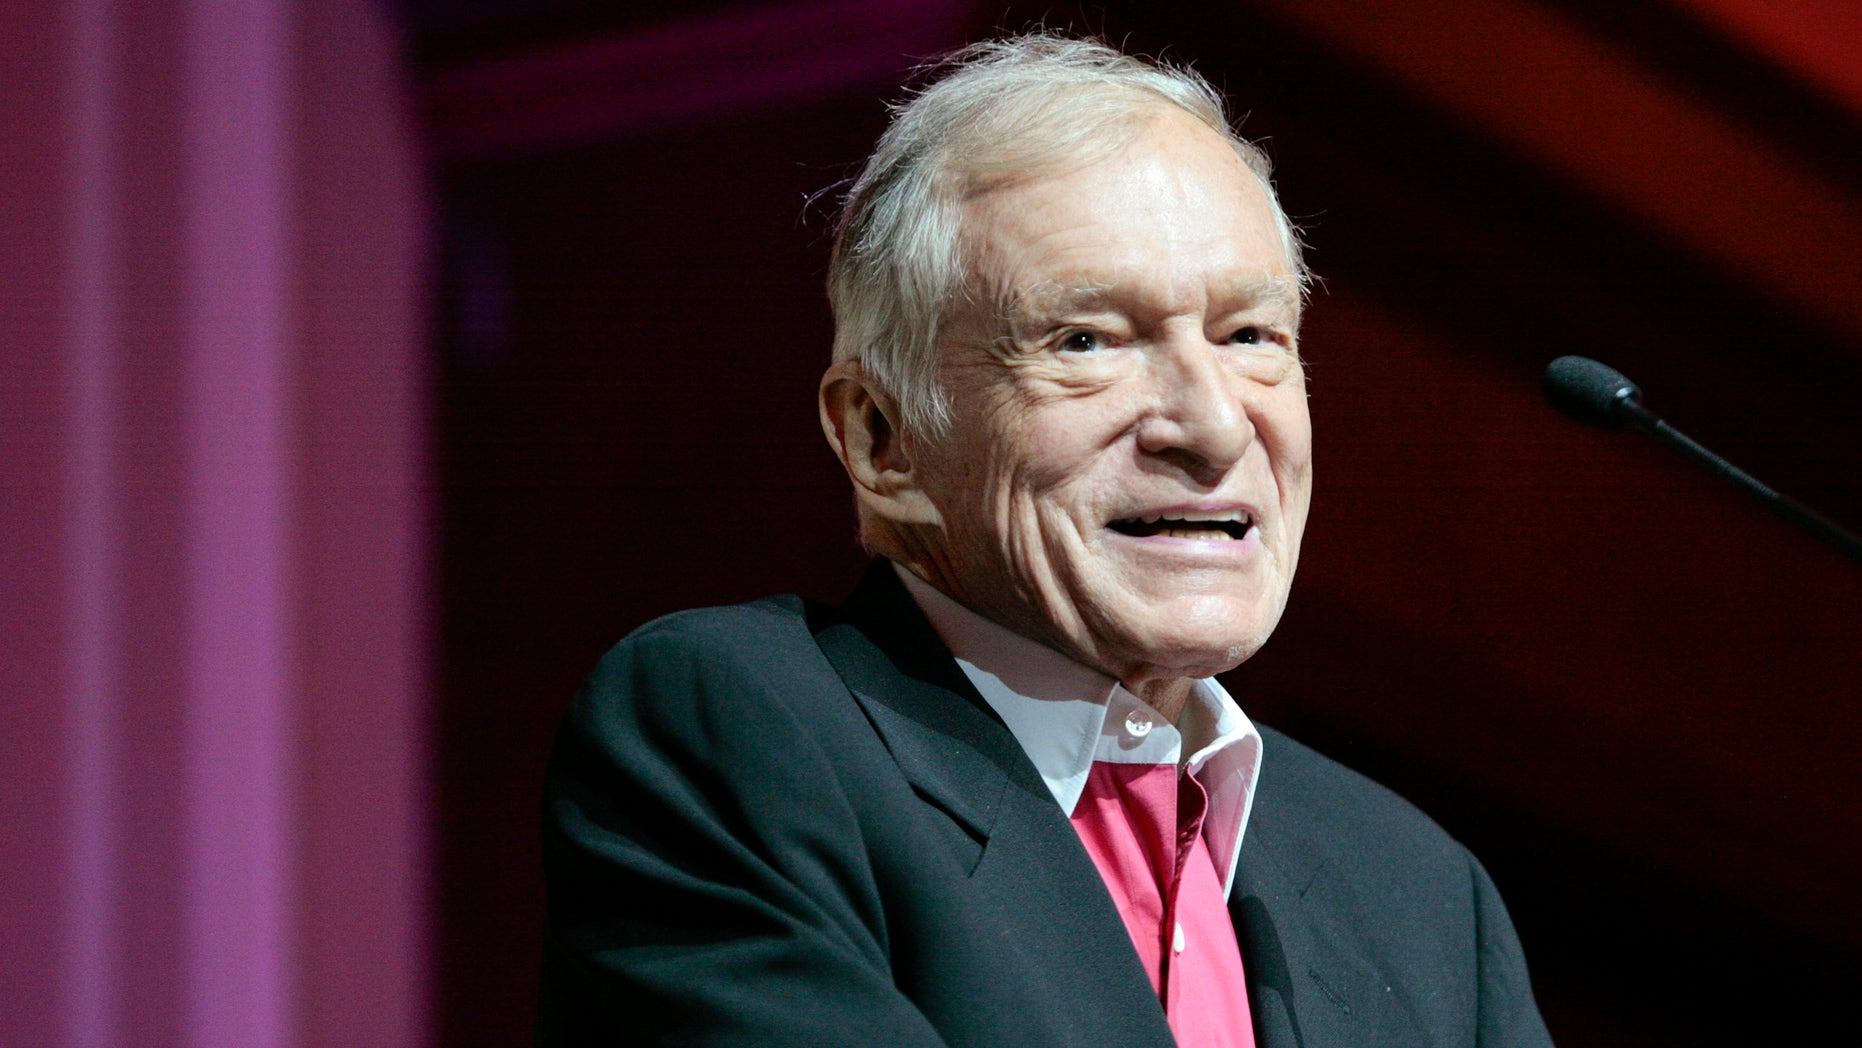 Hugh Hefner, founder, editor-in-chief and creative officer of Playboy, speaks as he is honored with the Hollywood Distinguished Service Award in Memory of Johnny Grant by the Hollywood Chamber of Commerce in Hollywood, California June 7, 2012.